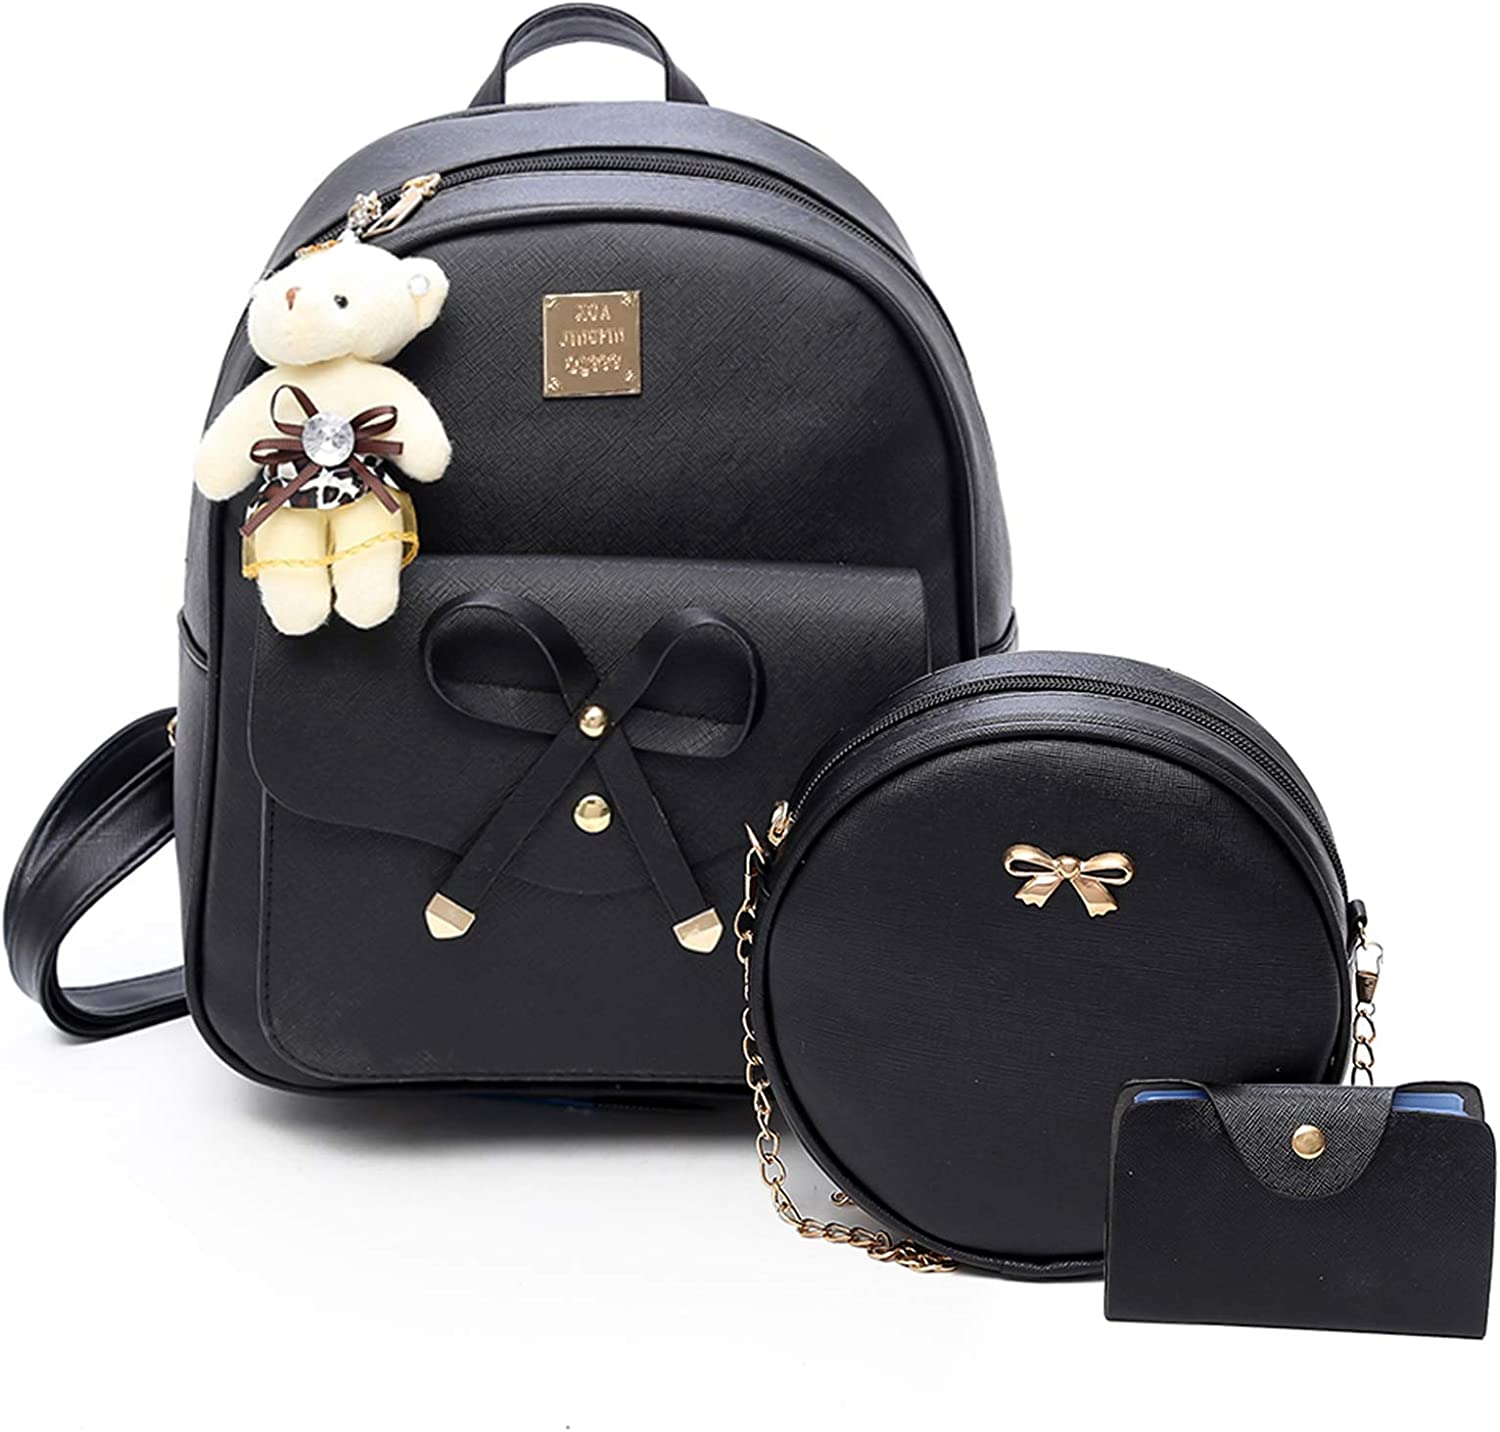 ZGWJ Mini Leather Backpack Purse Bowknot Small Backpack Cute Casual Travel Daypacks for Girls Women(3-Pieces)